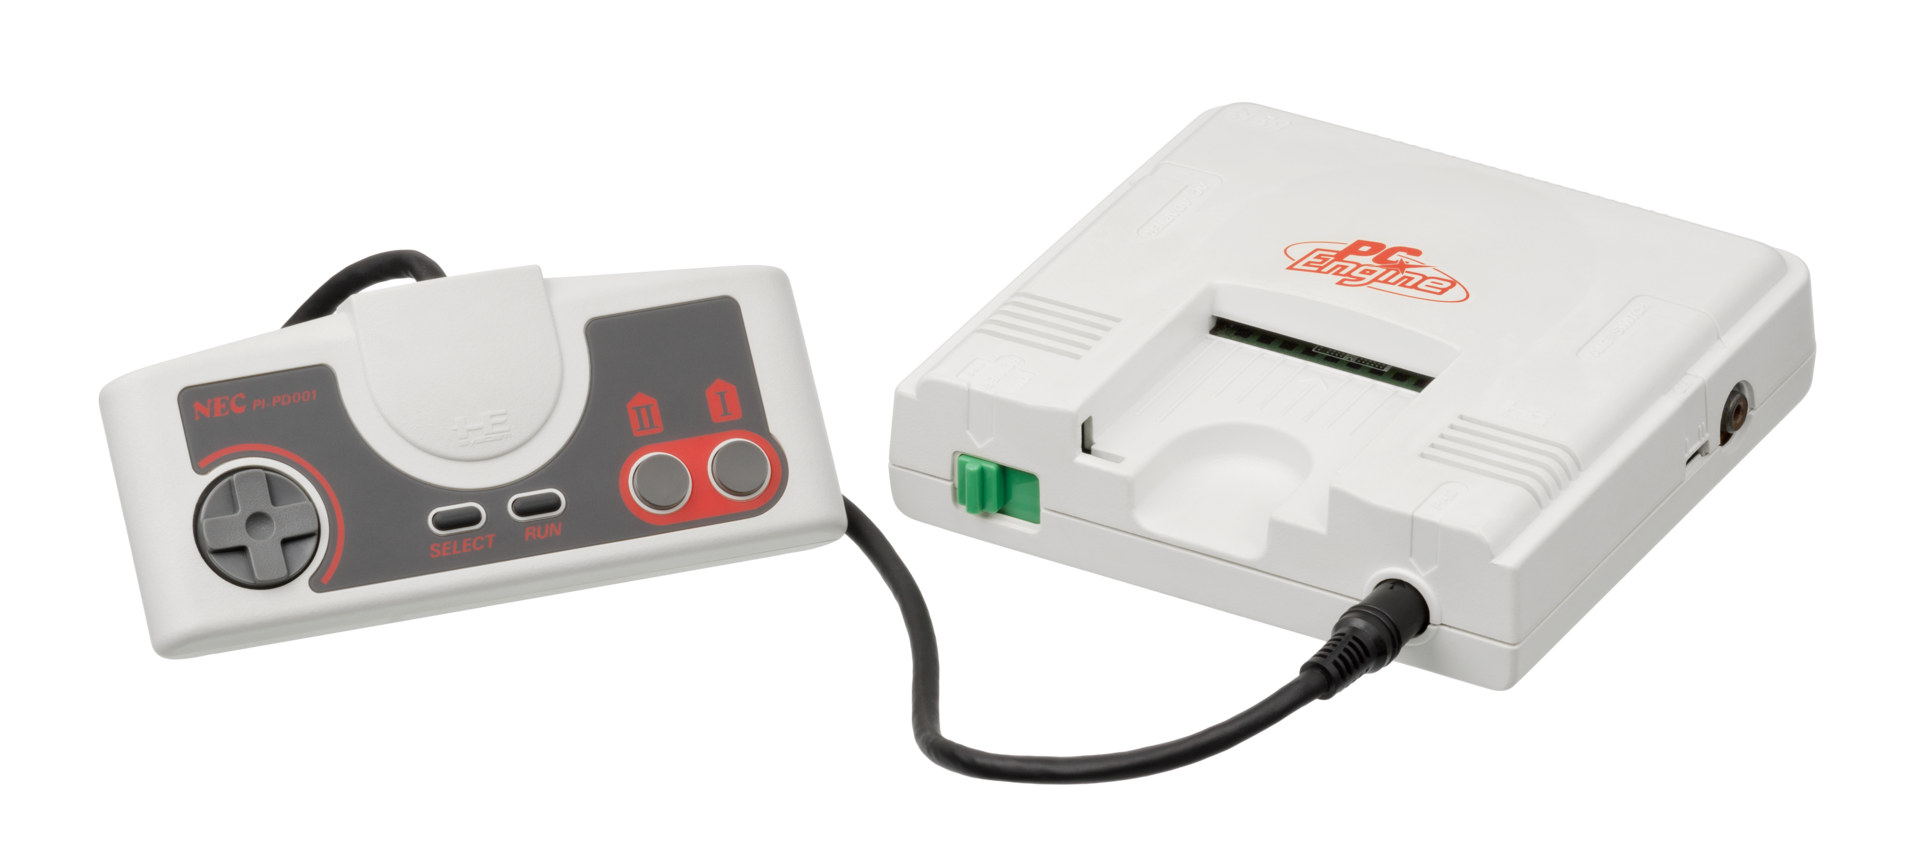 https://upload.wikimedia.org/wikipedia/commons/thumb/e/e0/PC-Engine-Console-Set.png/1920px-PC-Engine-Console-Set.png